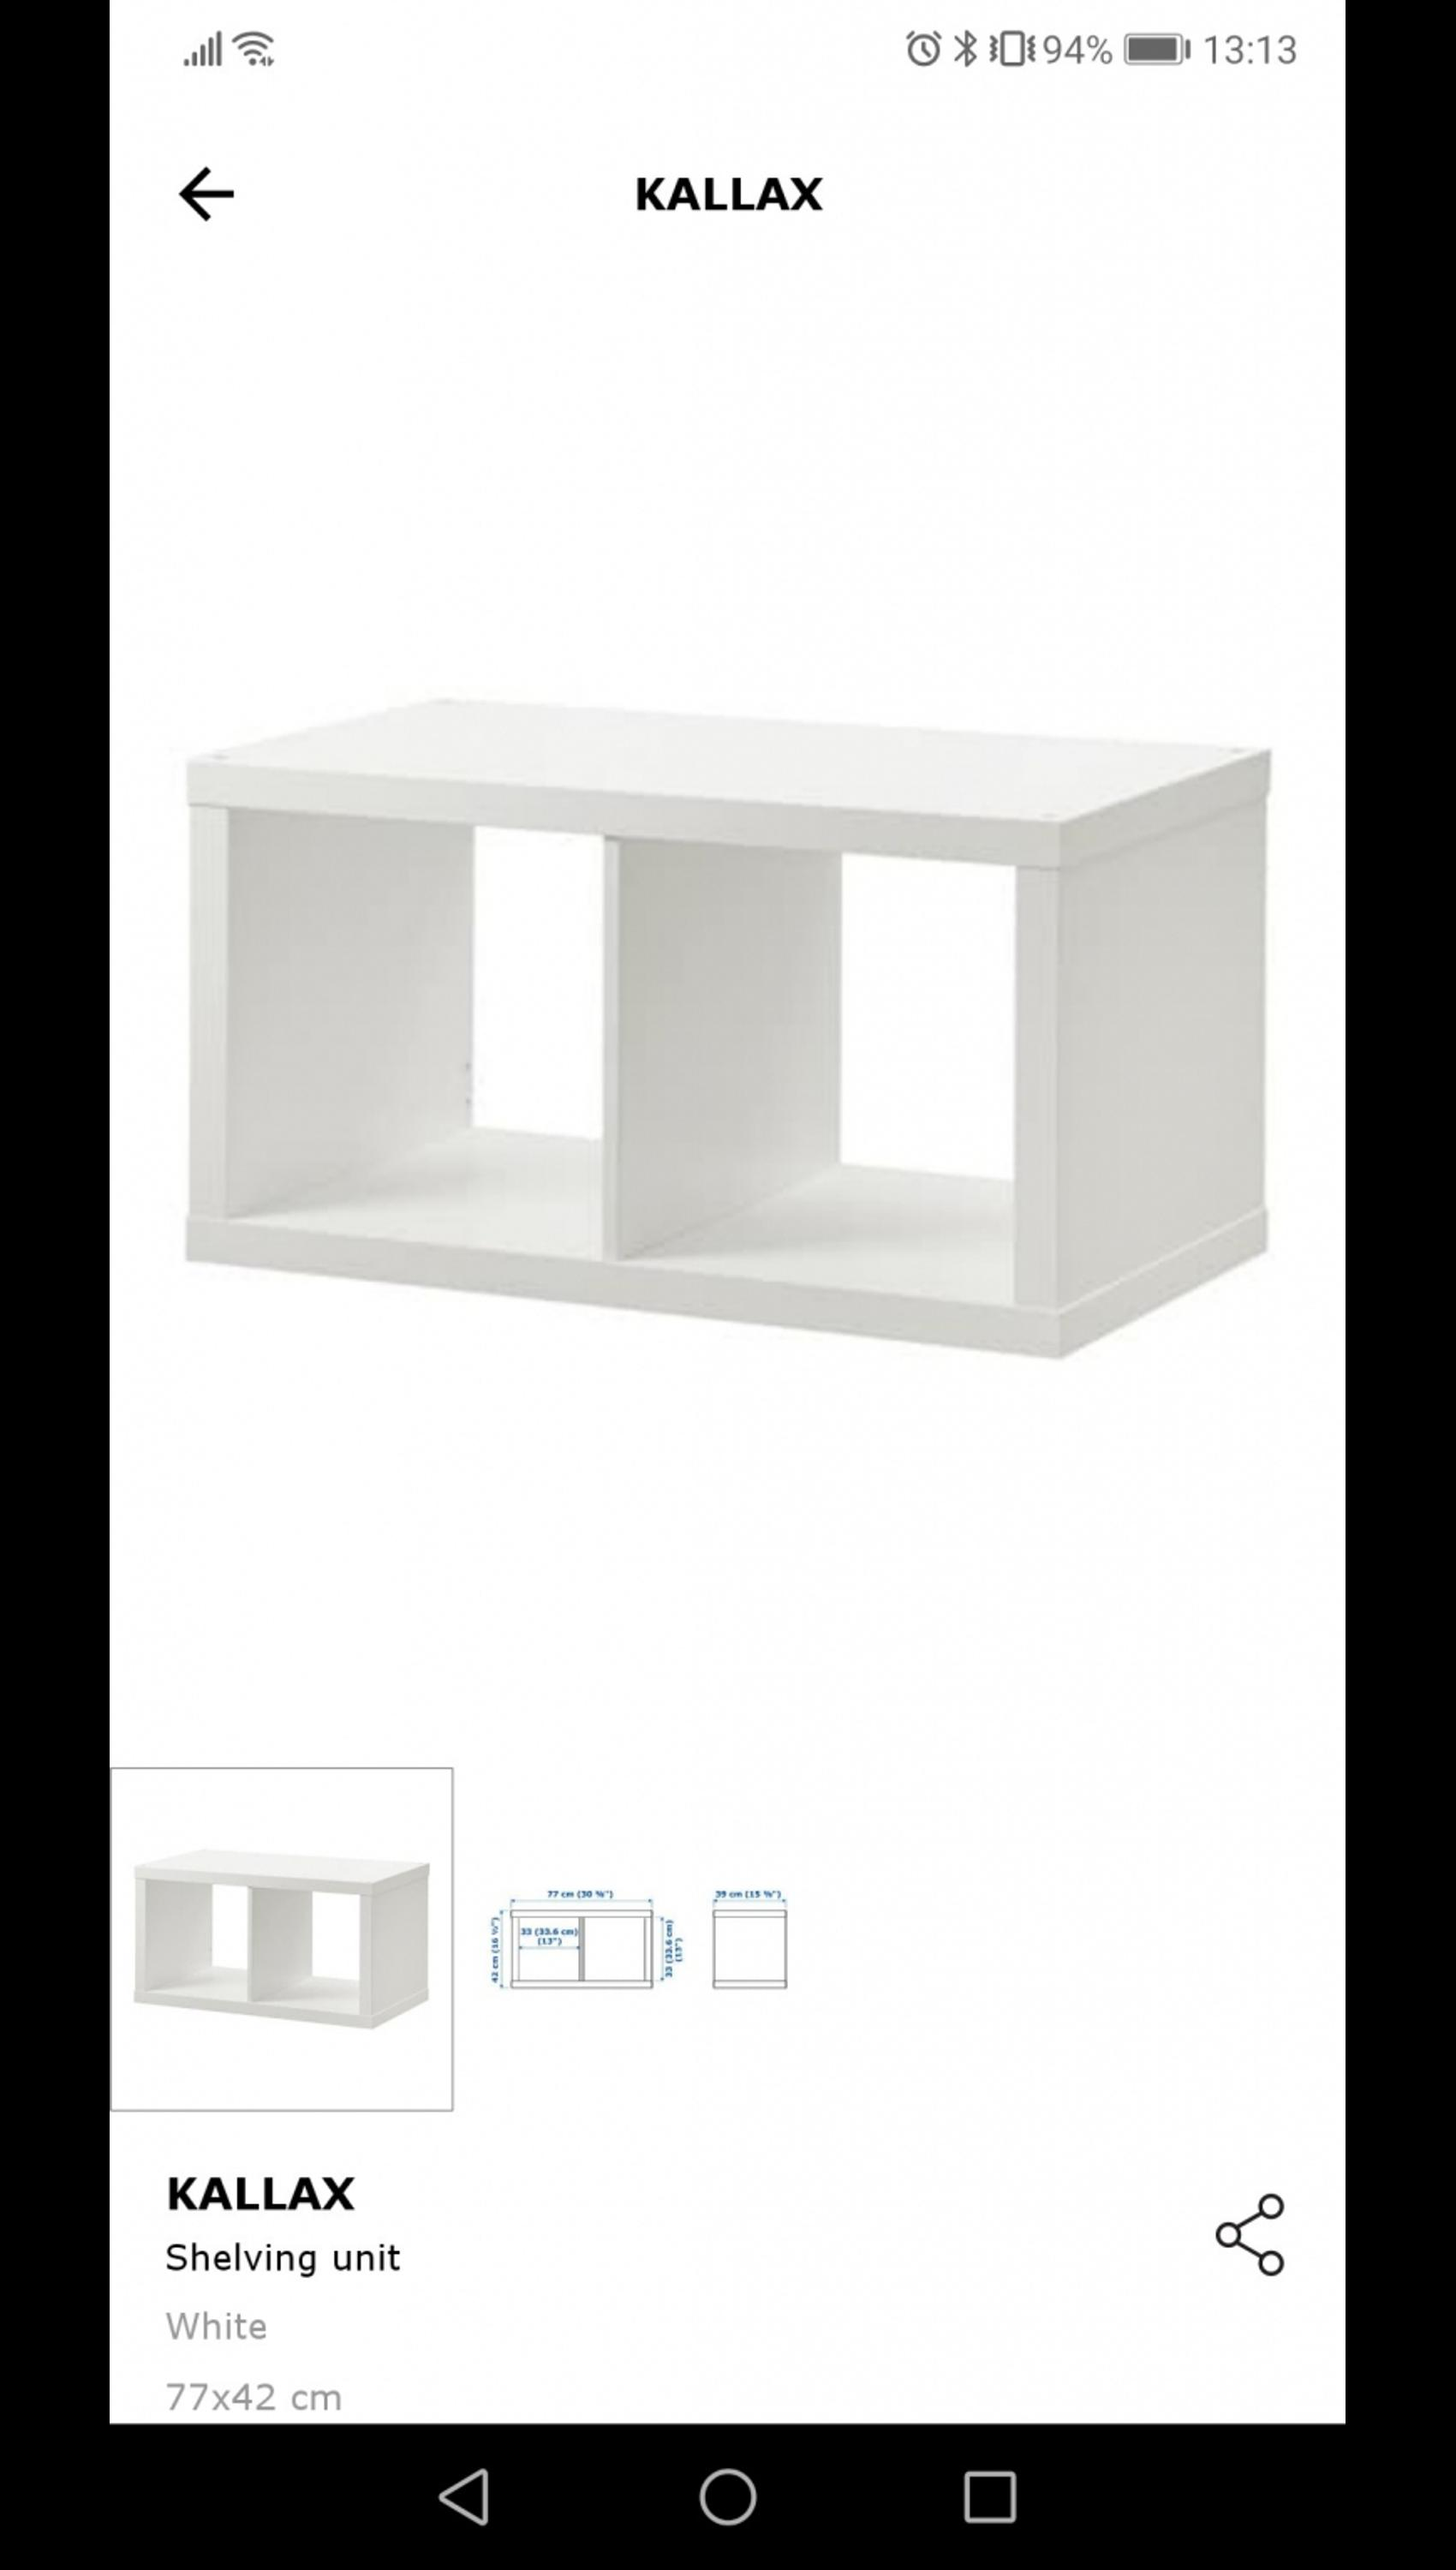 Home Kitchen Laundry Storage Organisation Shelving Storage 77x42 Cm 2 X Ikea Kallax Shelving Unit In White Kubicolab It